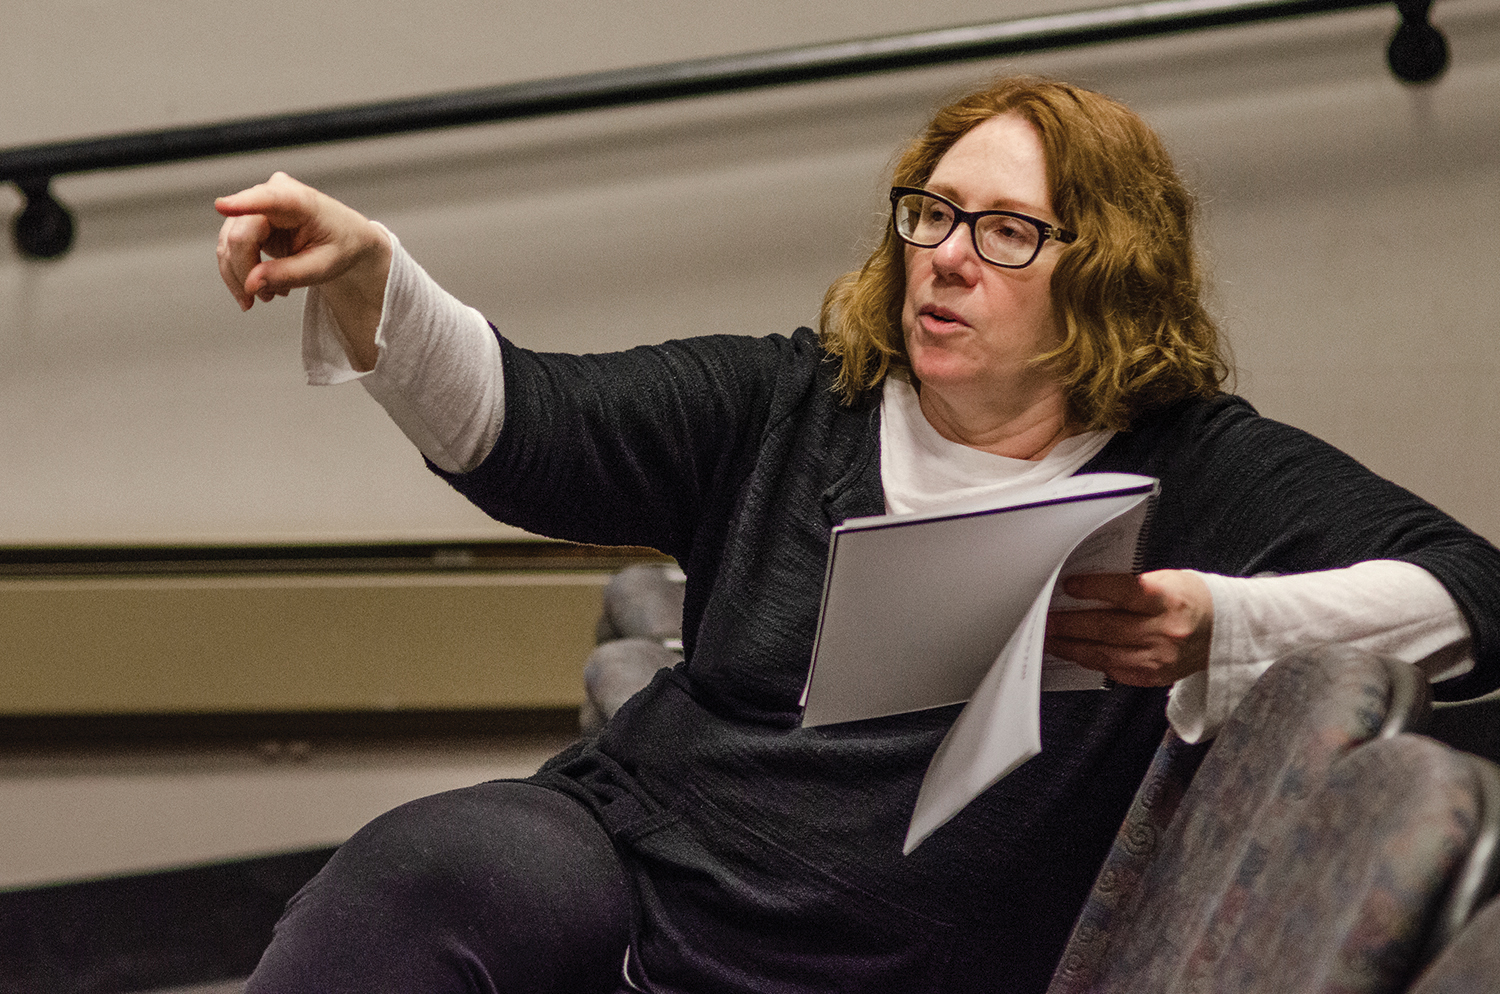 Instructor Beth Peterson has run the school's drama department for the past nine years. She will soon tour the country, researching other programs, with the goal of coming back and implementing a fiscally sound and well-structured new program to complement the school's new black box theatre, expected in 2023.